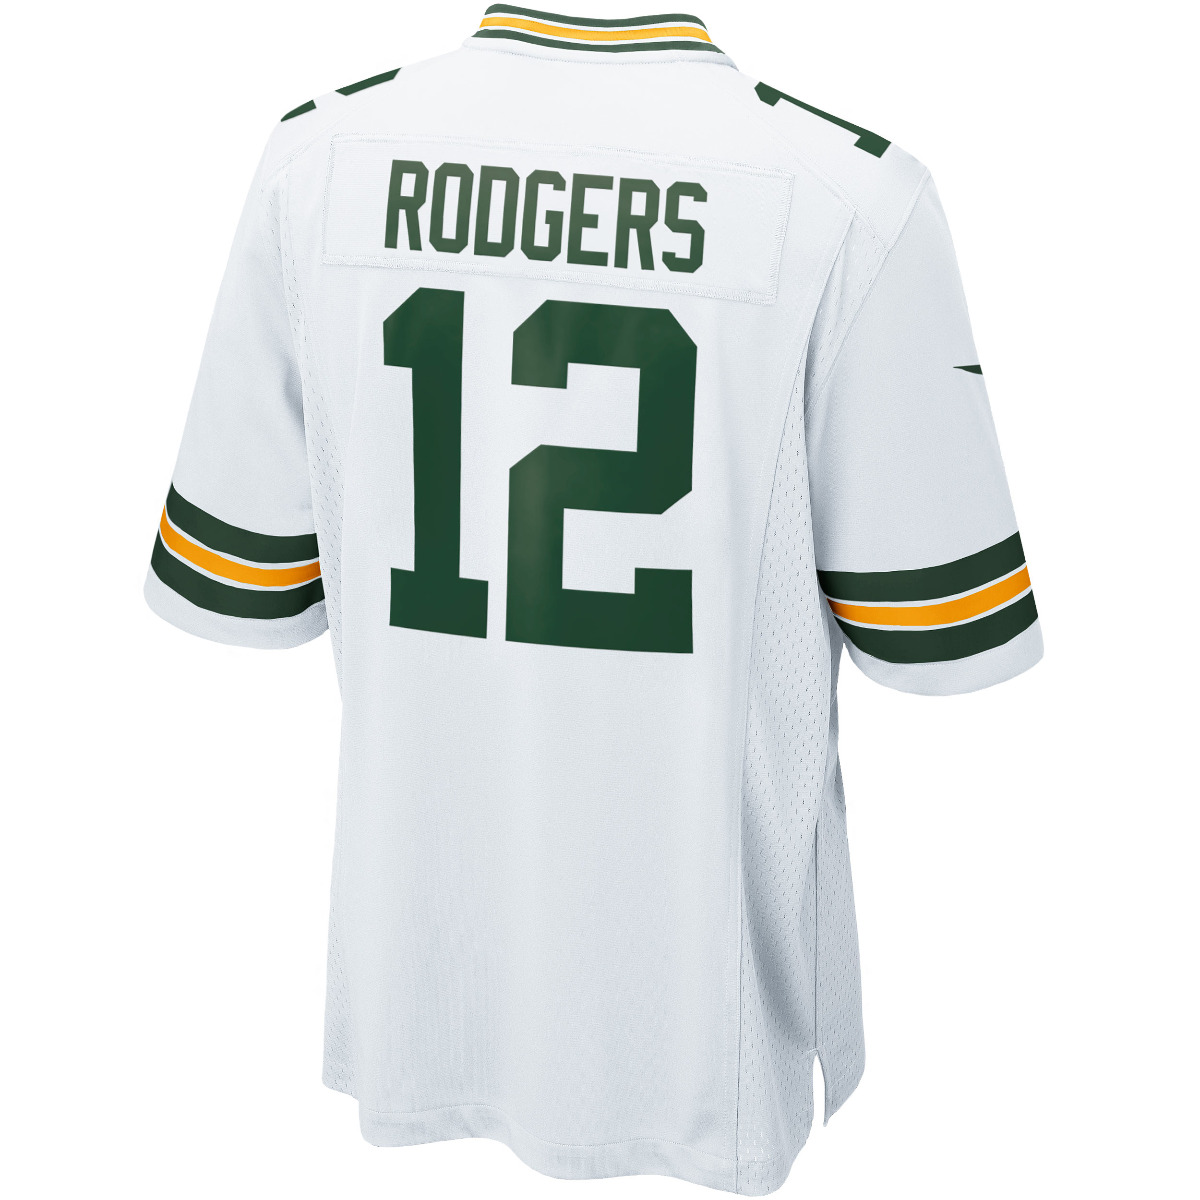 #12 Aaron Rodgers Away Game Jersey